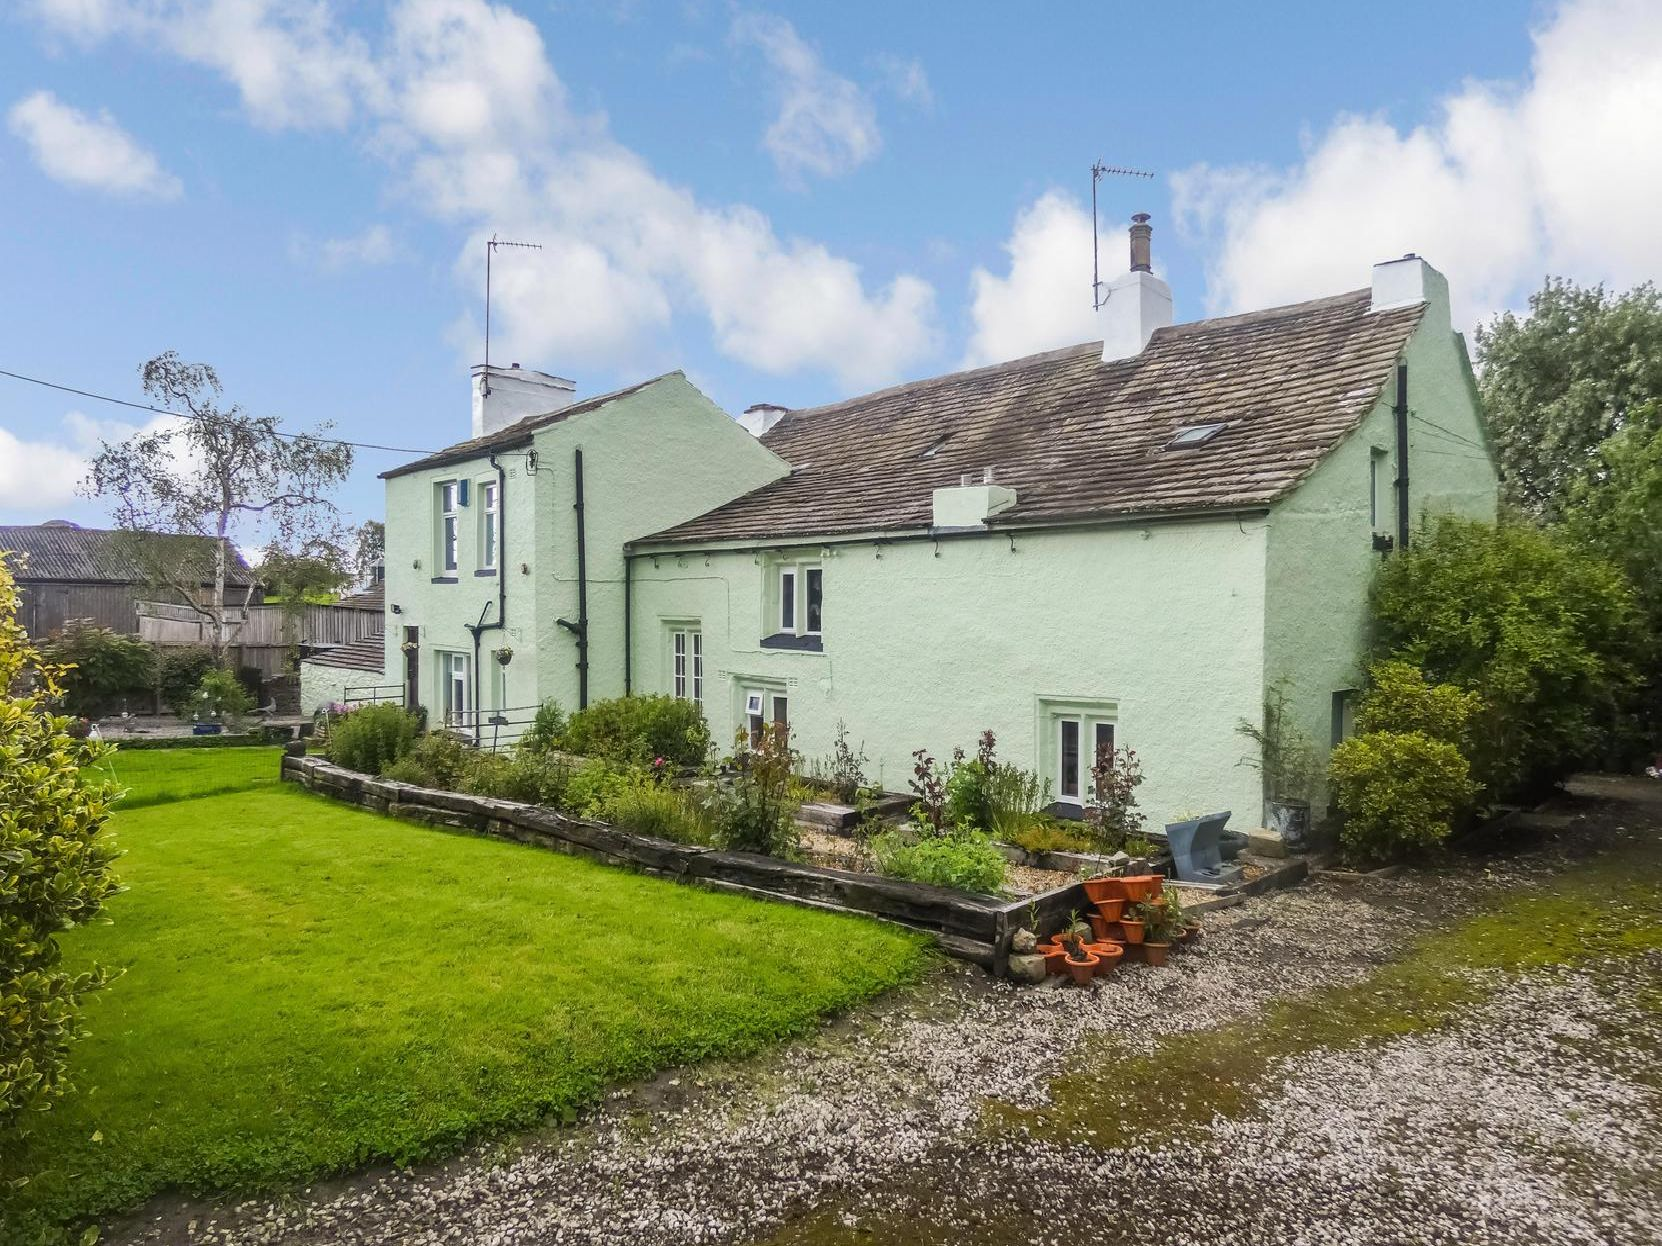 A five-bed detached house, Demesne House is on the market for 625,000.